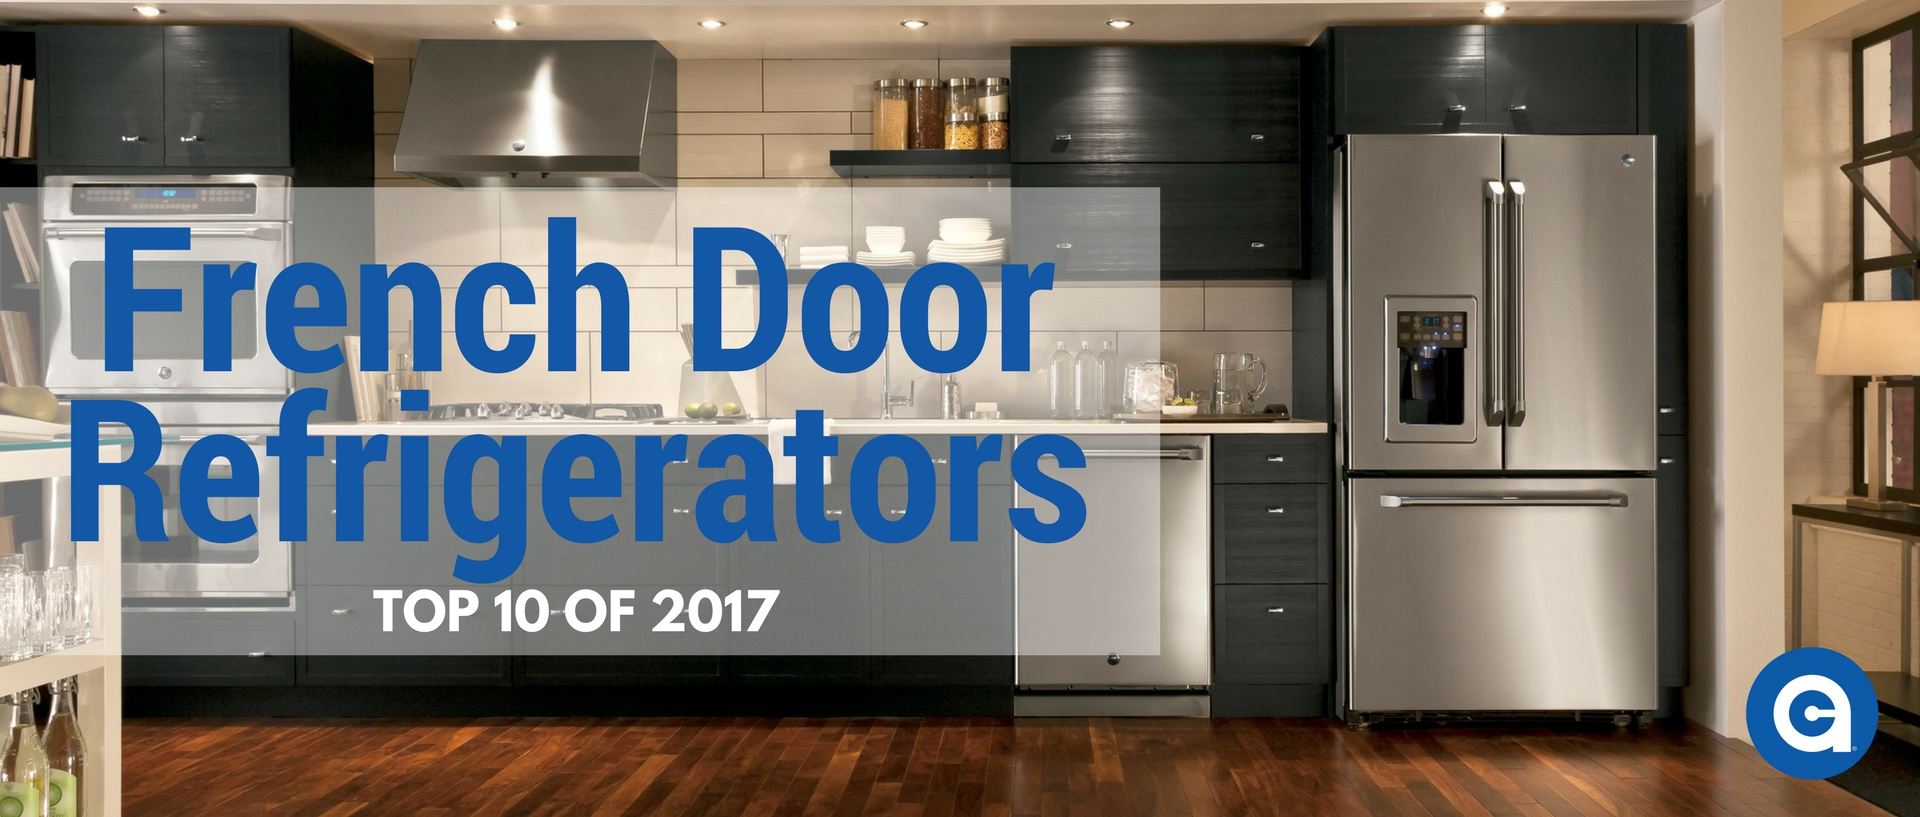 Maker Models Schematic Maytag Side By Factory Installed Ice Top 10 French Door Refrigerators Of 2017 Appliances Connection